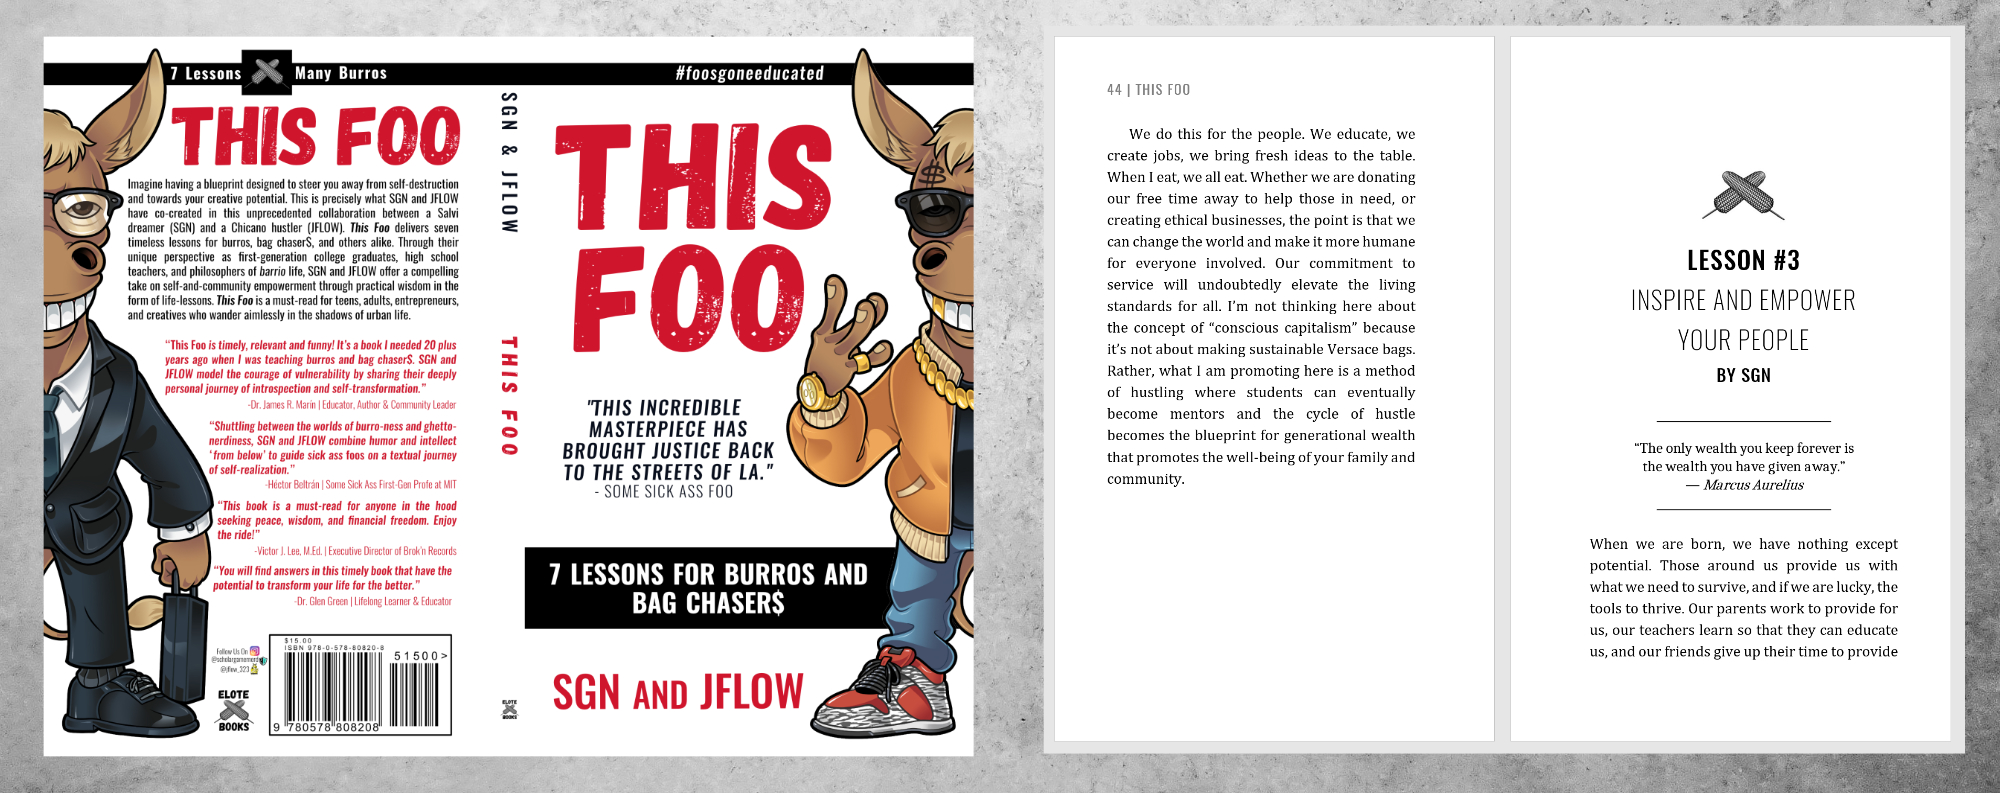 Example image of book This Foo by SGN and JFLOW